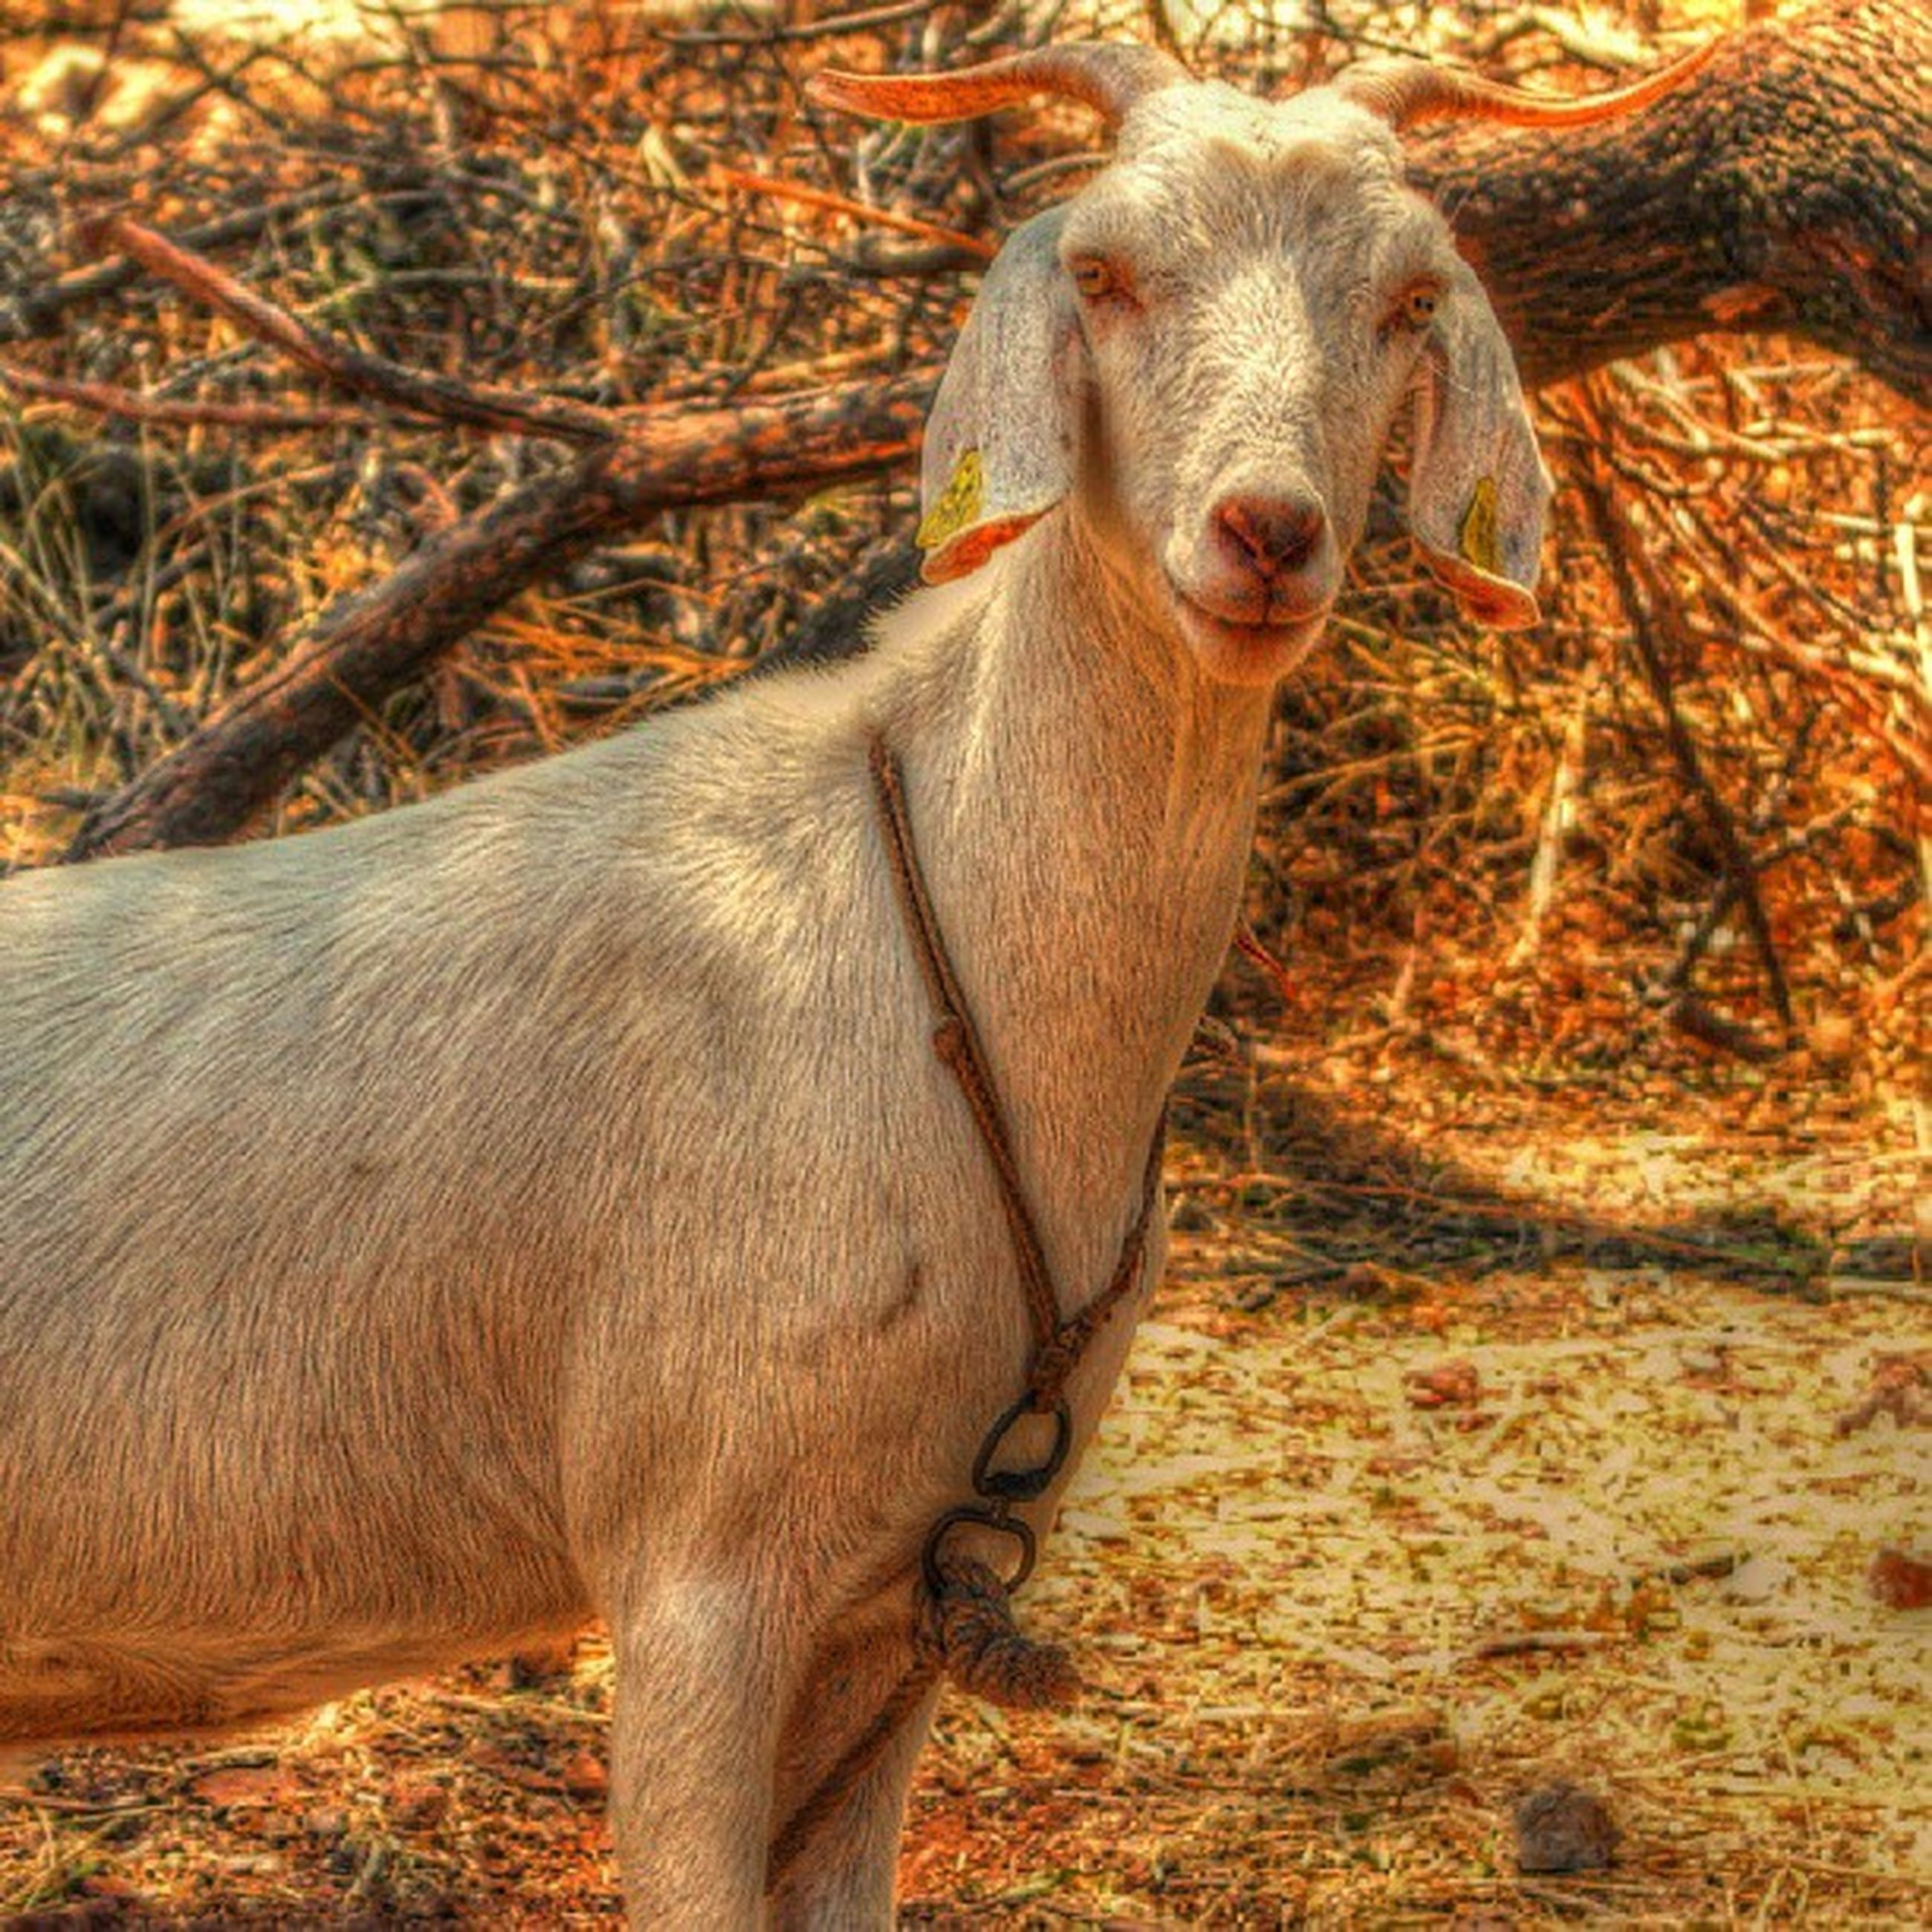 animal themes, mammal, livestock, one animal, animals in the wild, field, standing, wildlife, domestic animals, herbivorous, brown, nature, young animal, zoology, two animals, focus on foreground, outdoors, day, no people, vertebrate